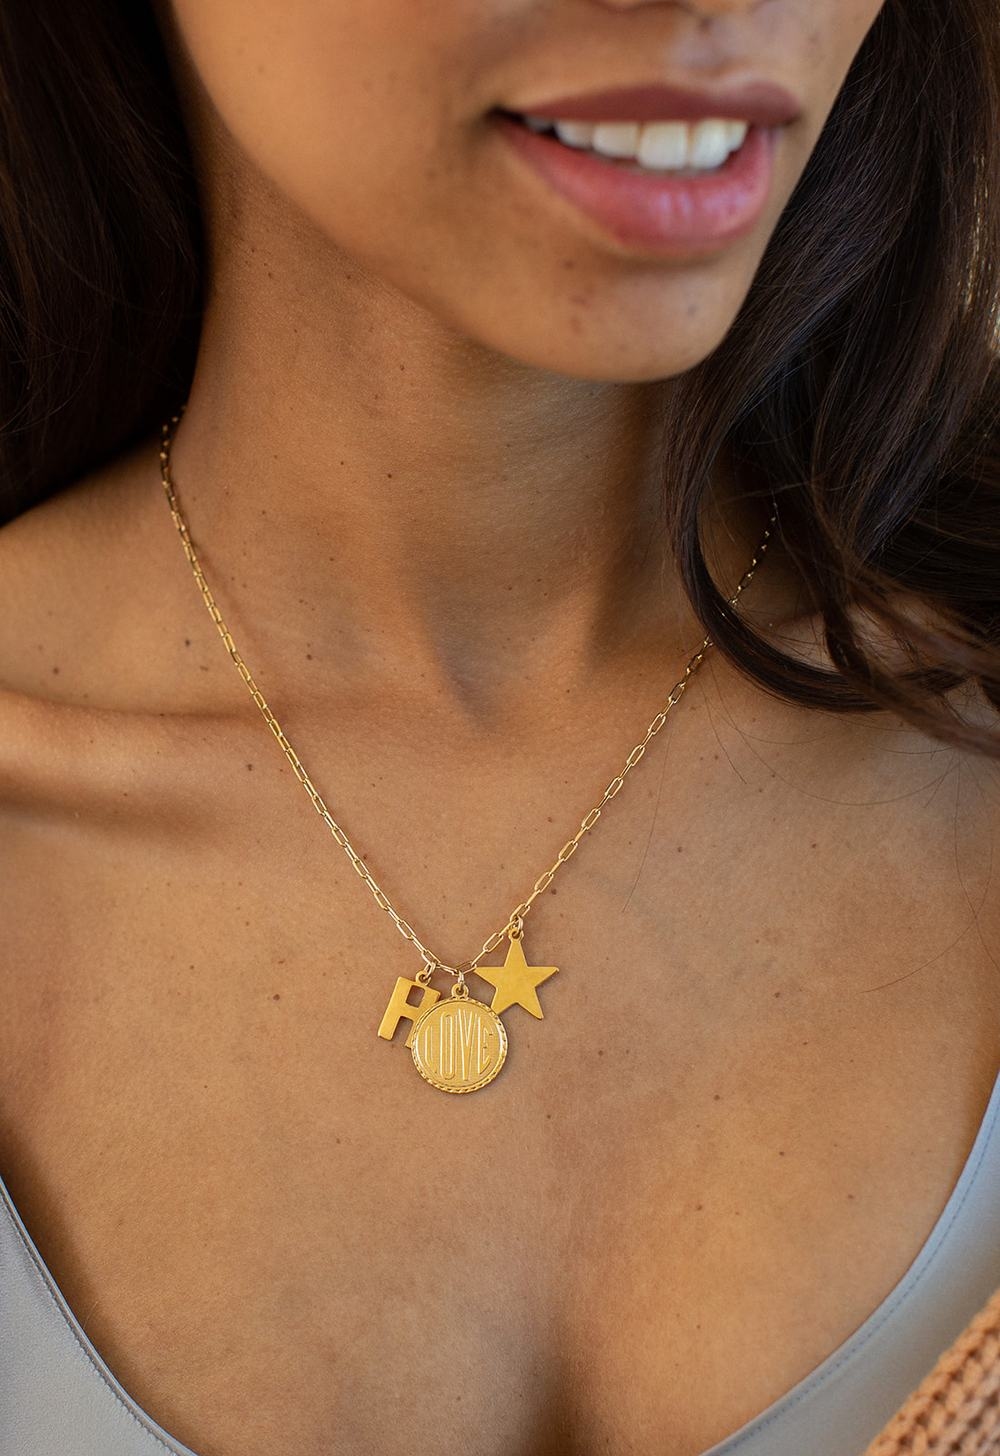 My Favorite Jewelry Designers For Unique Jewelry: Hart Hagerty Custom Charm Necklace